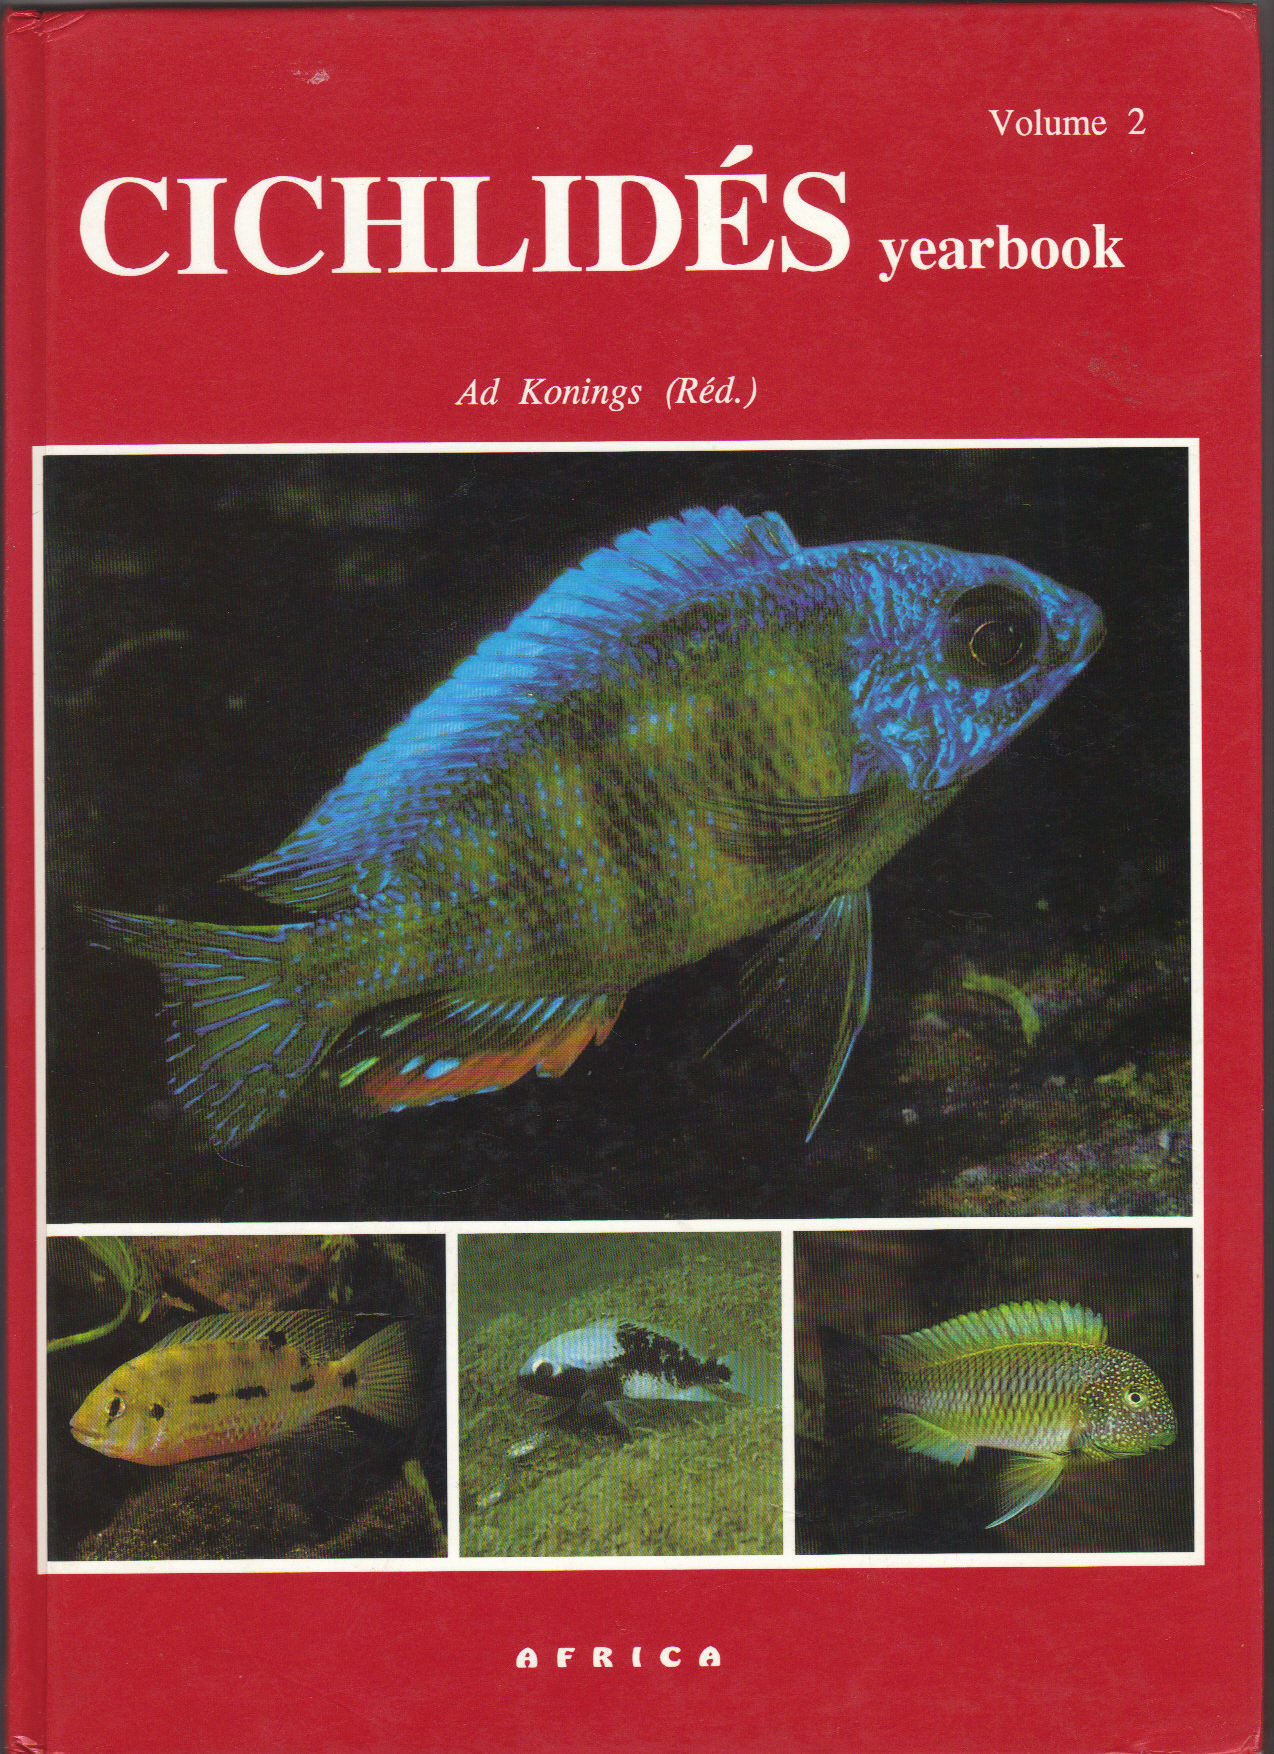 Cichlidès Yearbook. Volume 2